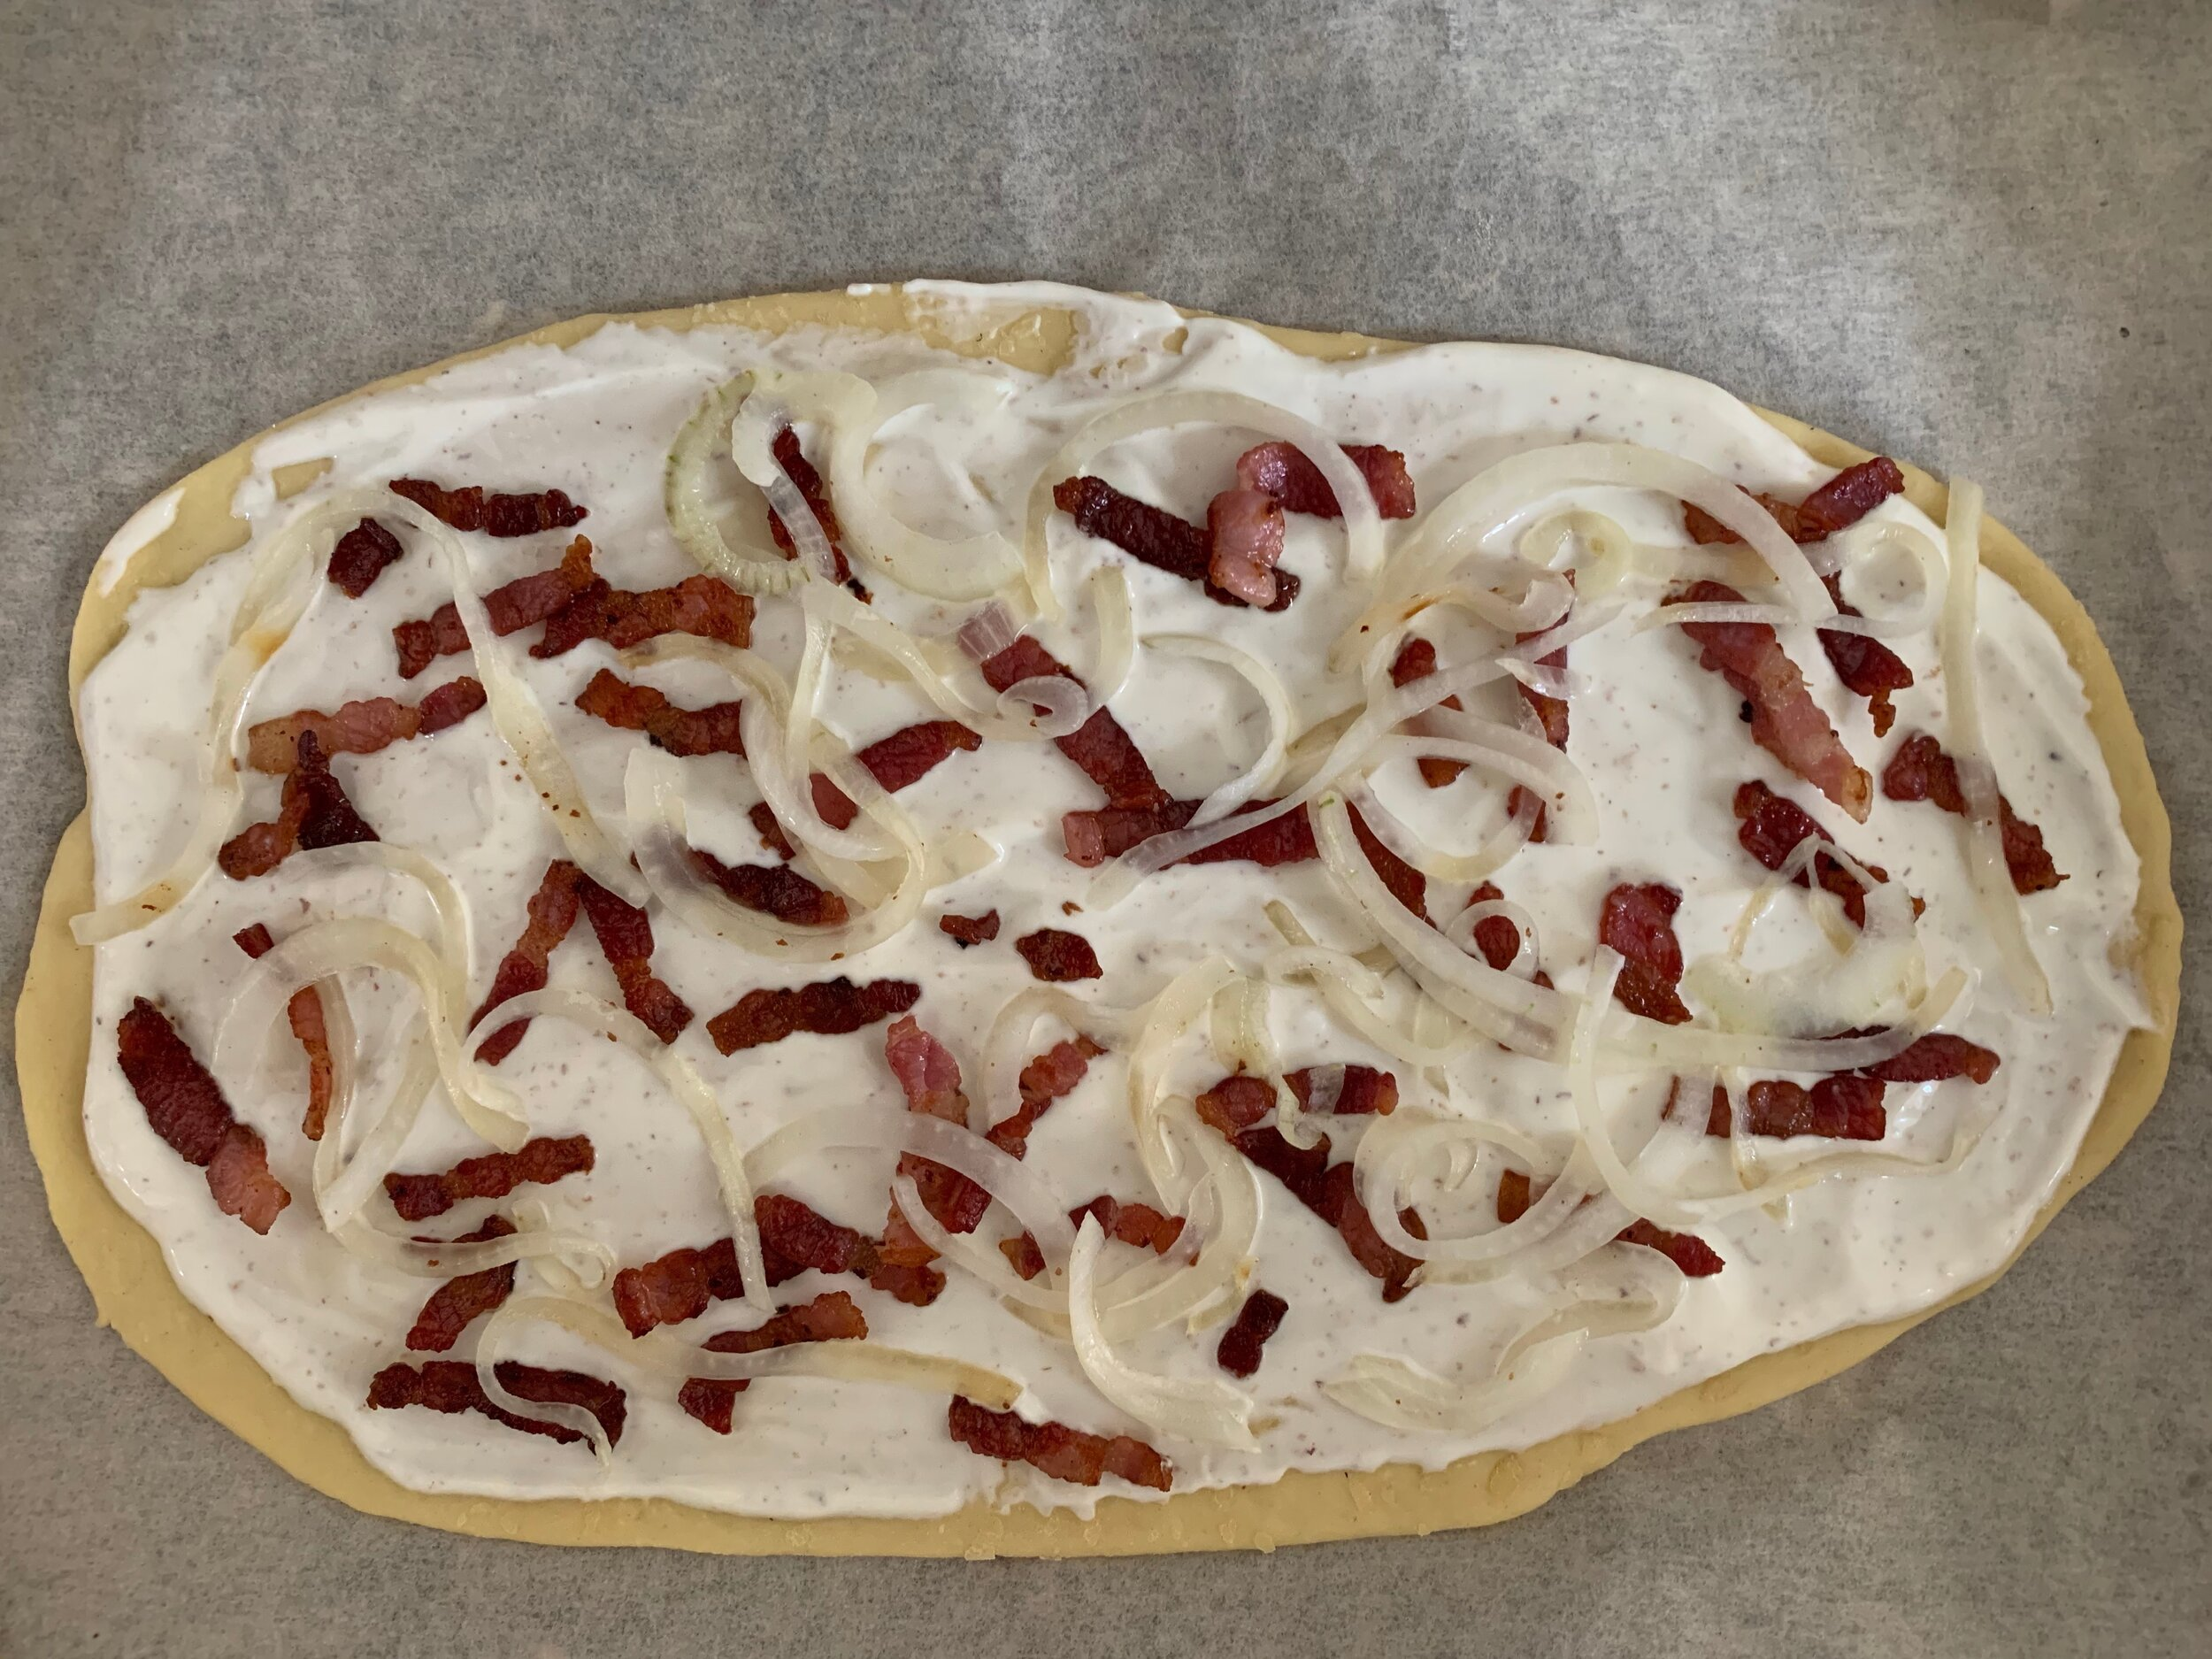 Assembled tarte flambée ready to go in the oven